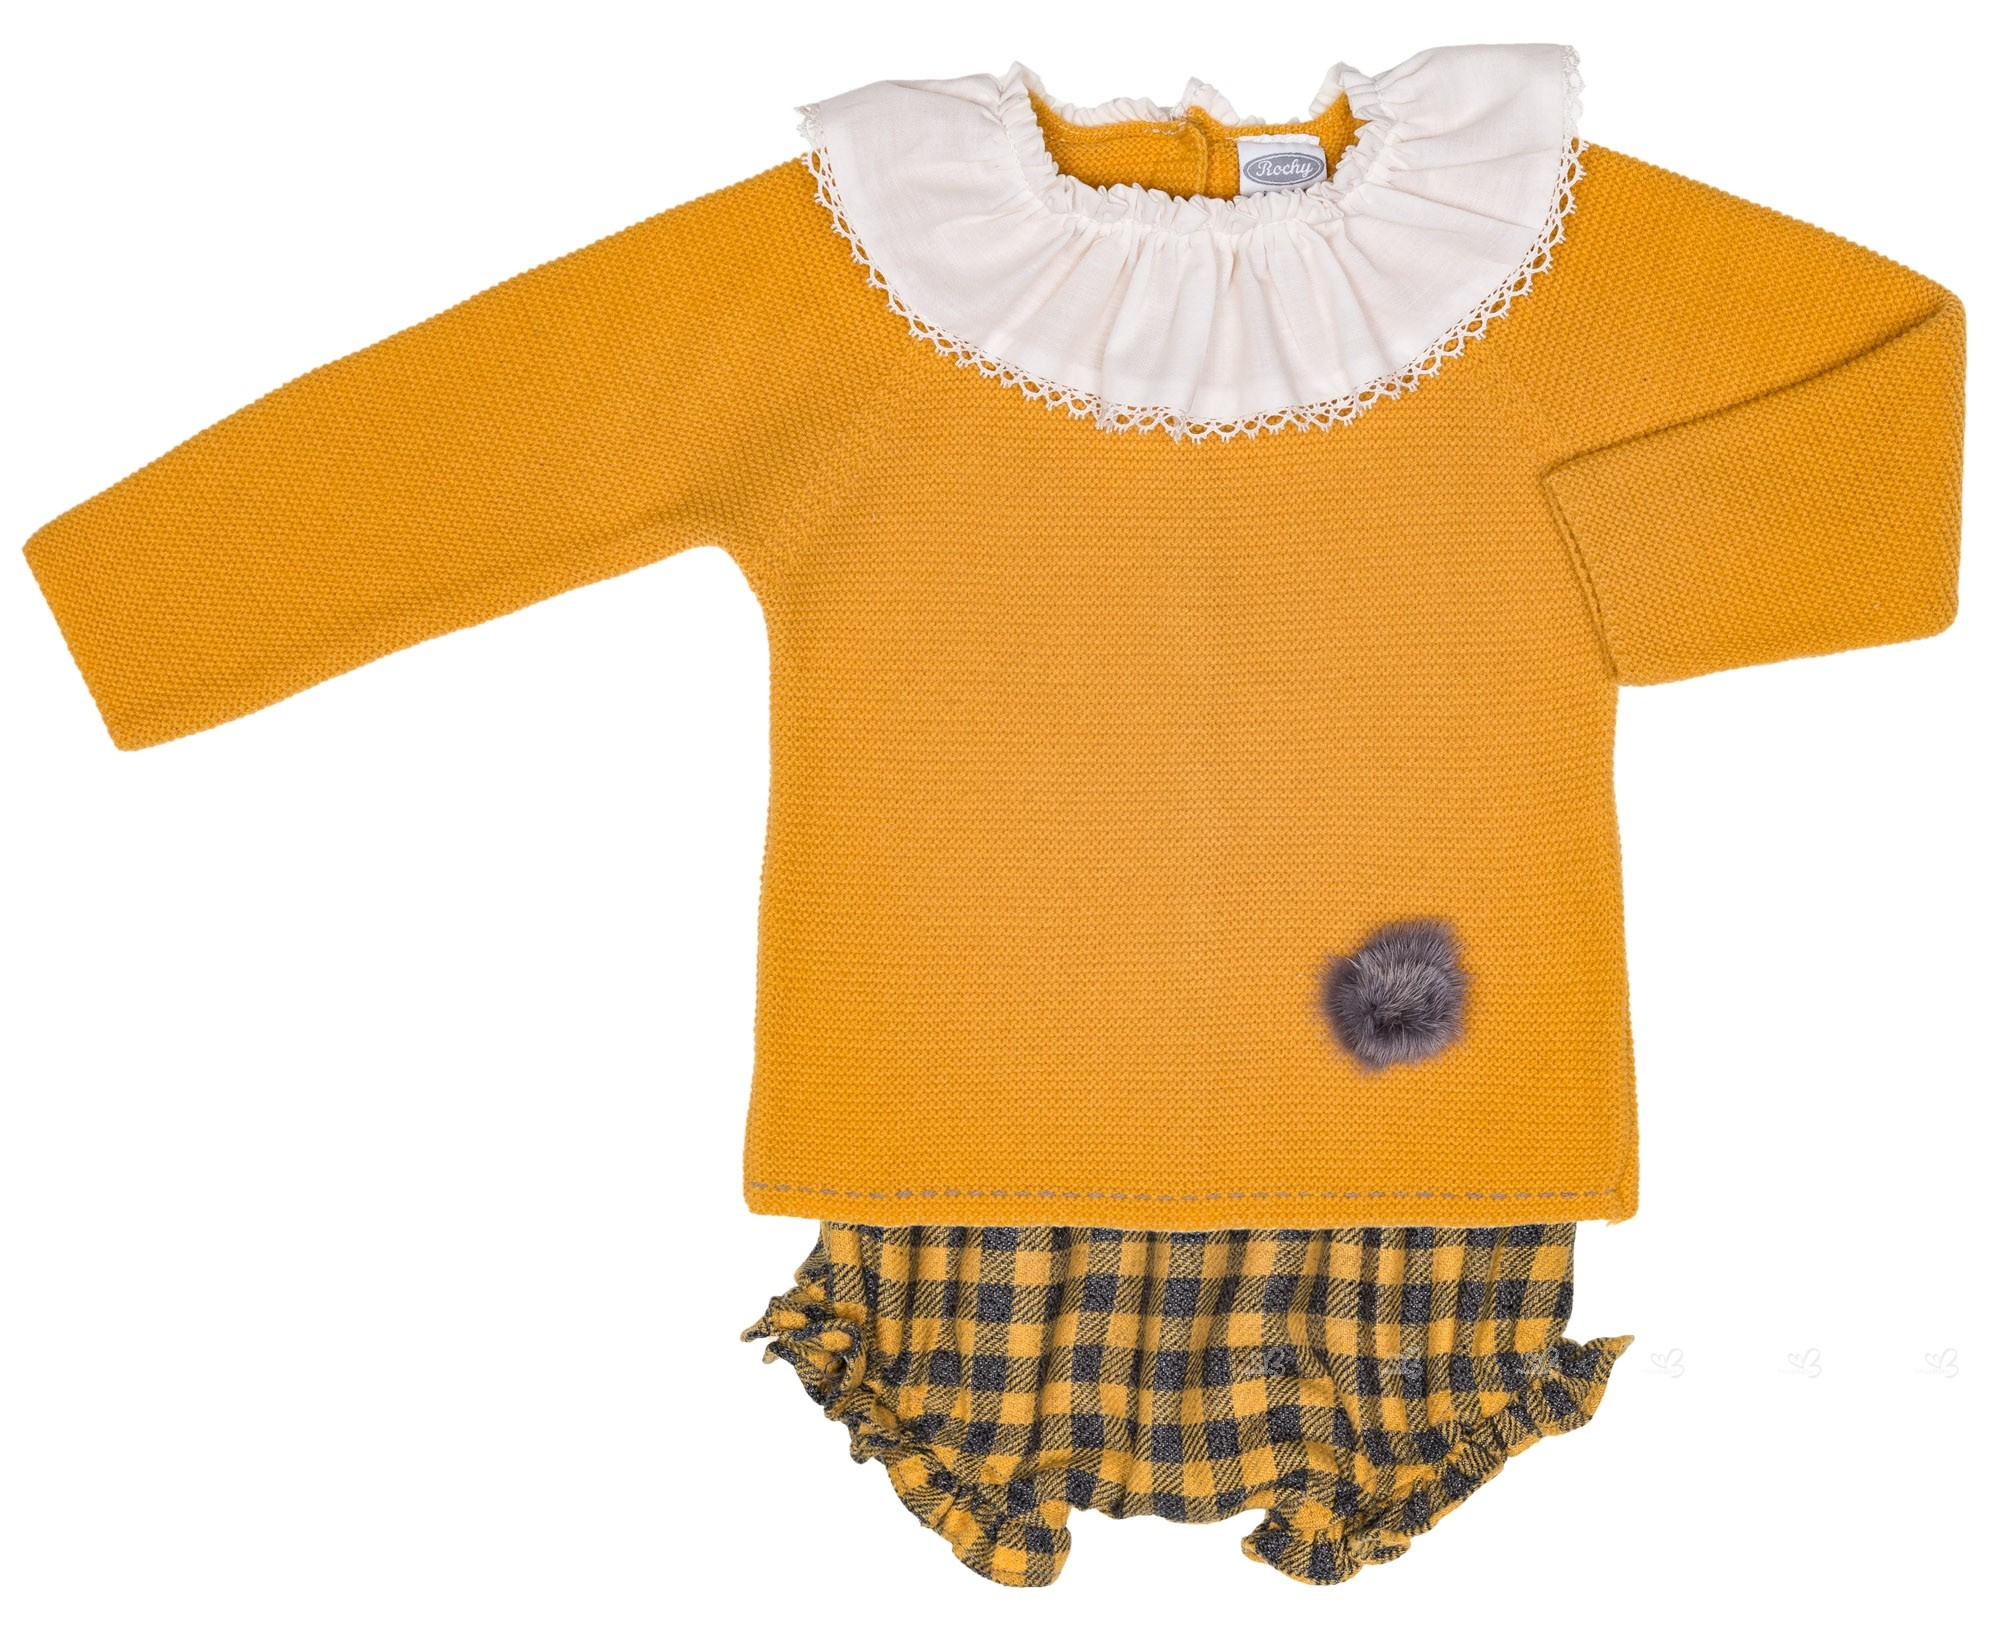 be82398ec629 Rochy Baby Mustard Sweater & Checked Shorts Set | Missbaby